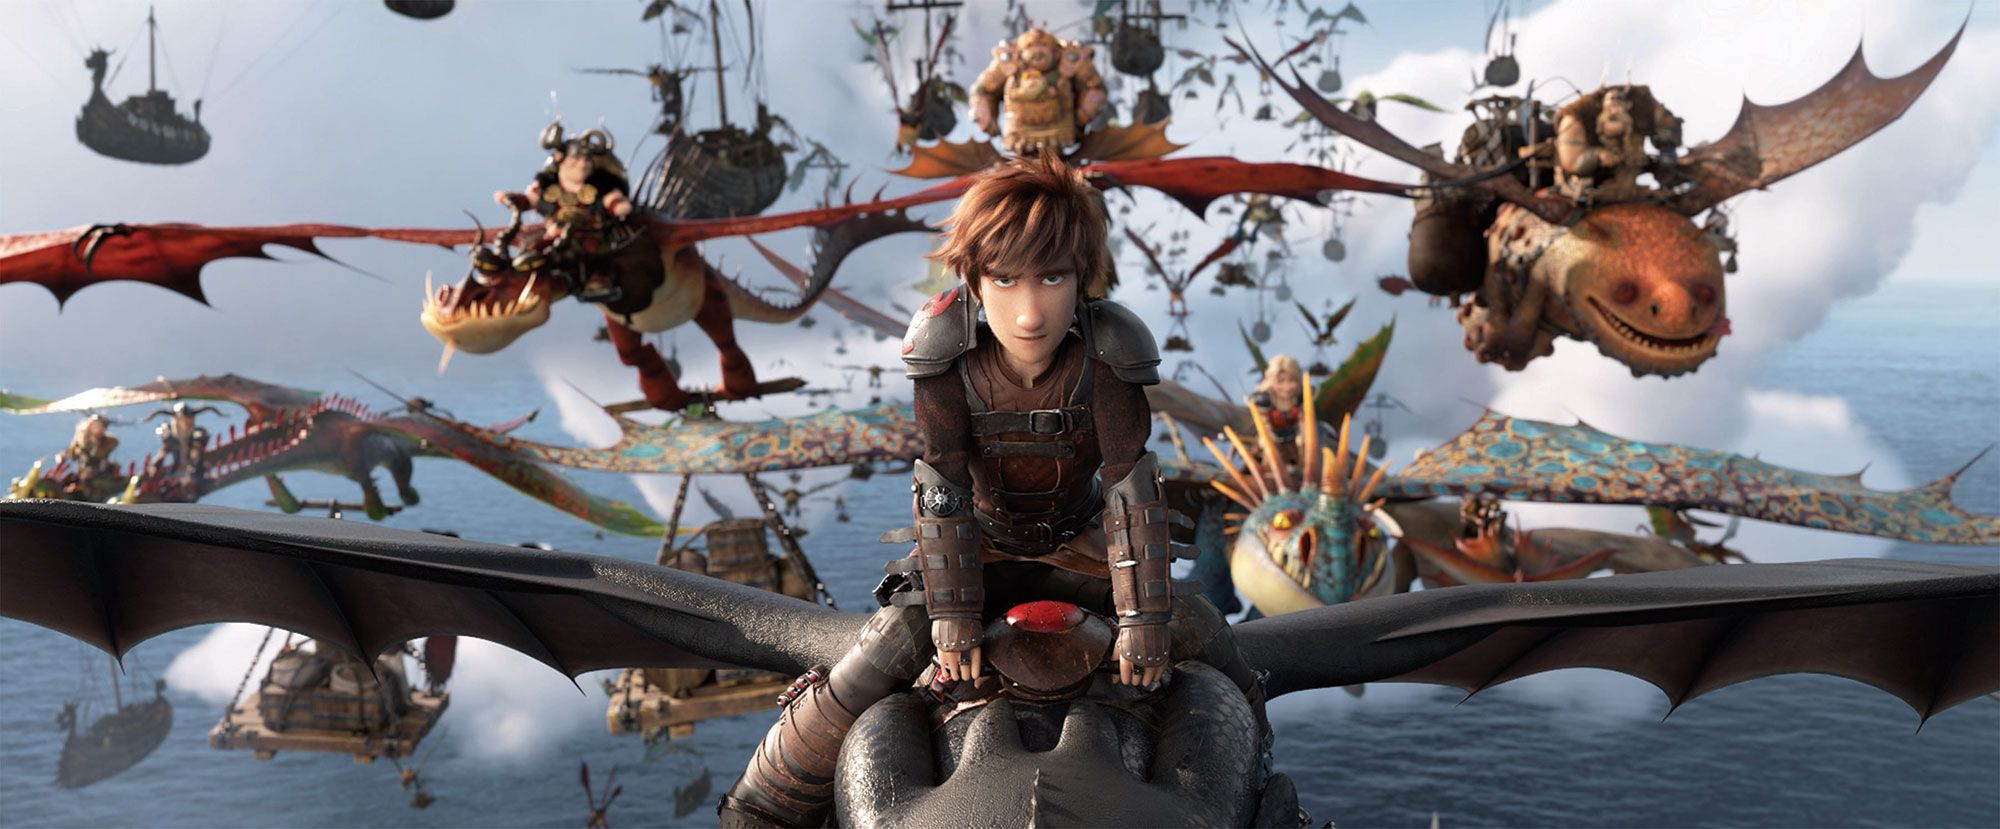 How to Train Your Dragon 3 Blu-ray Brings the Trilogy Home in Style